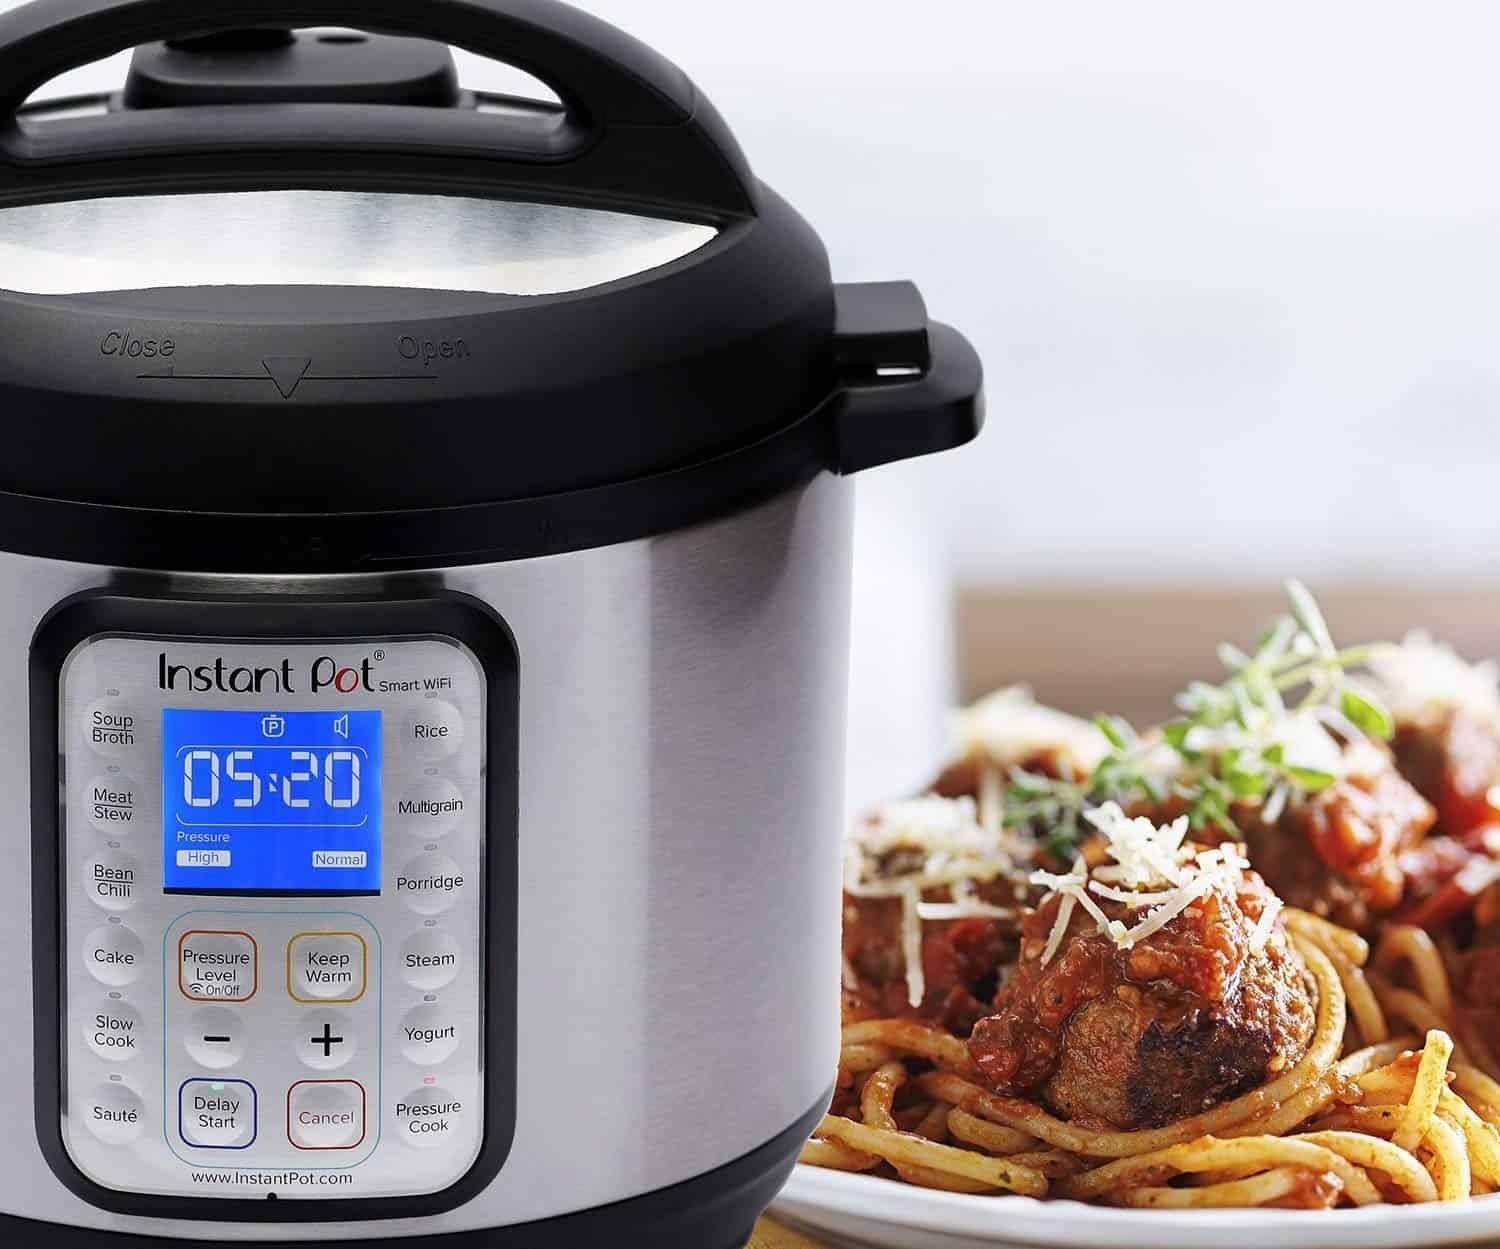 Instant Pot Smart WiFi image 1